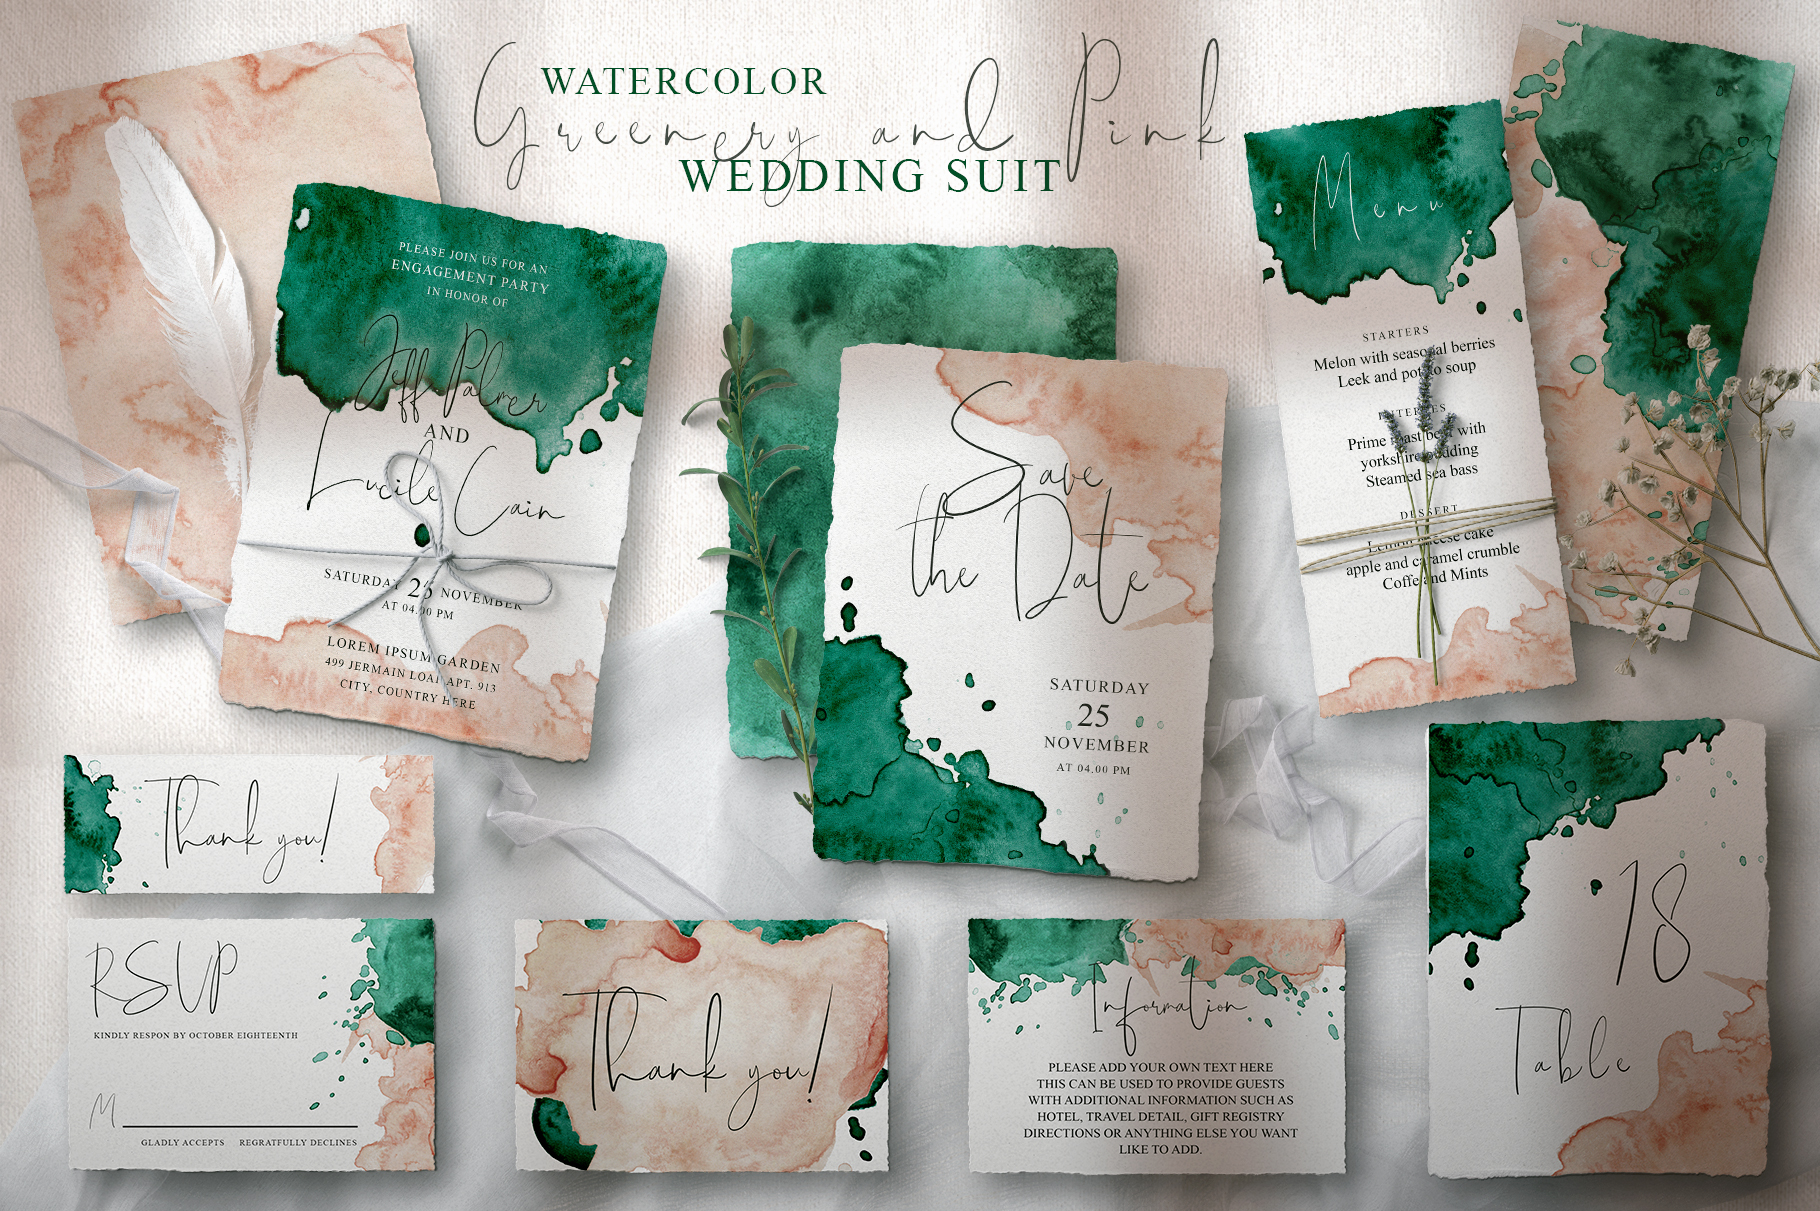 Green and Pink Wedding Invitation Suit example image 1